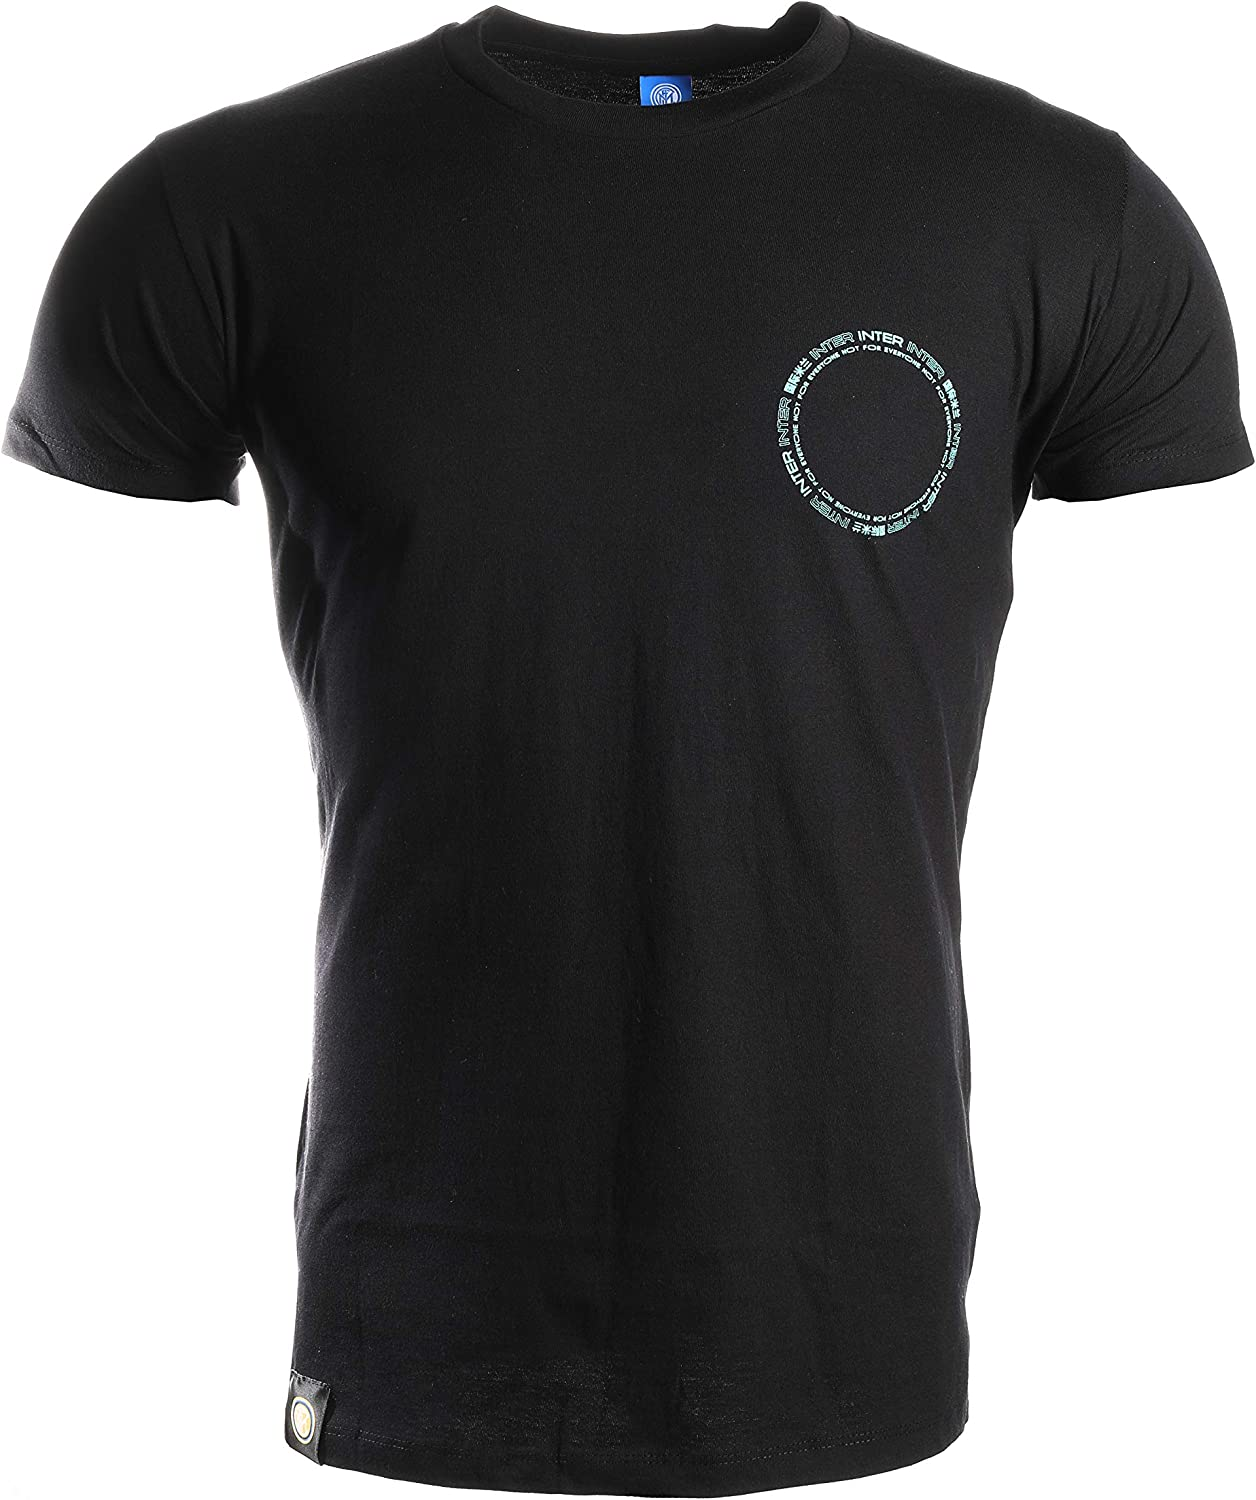 Inter T Shirt Not for Everyone Limited Edition Mixte